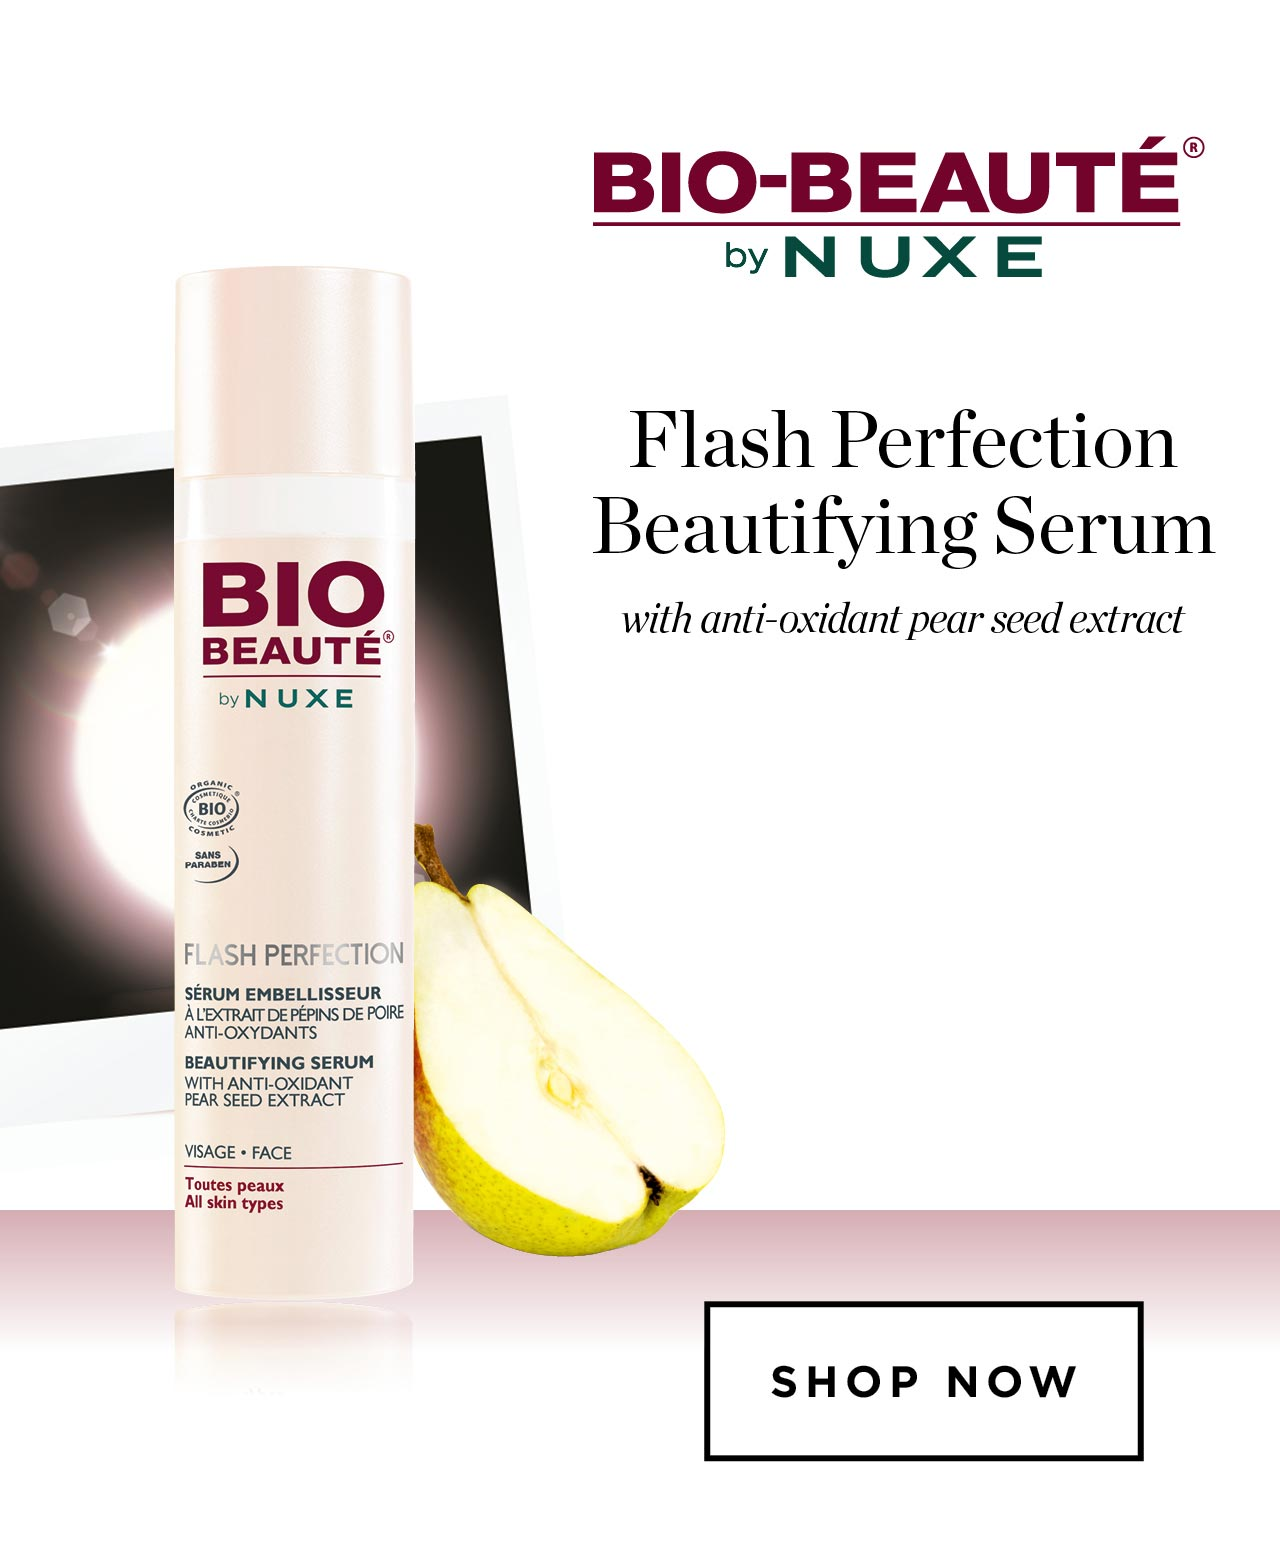 Flash Perfection Beautifying Serum